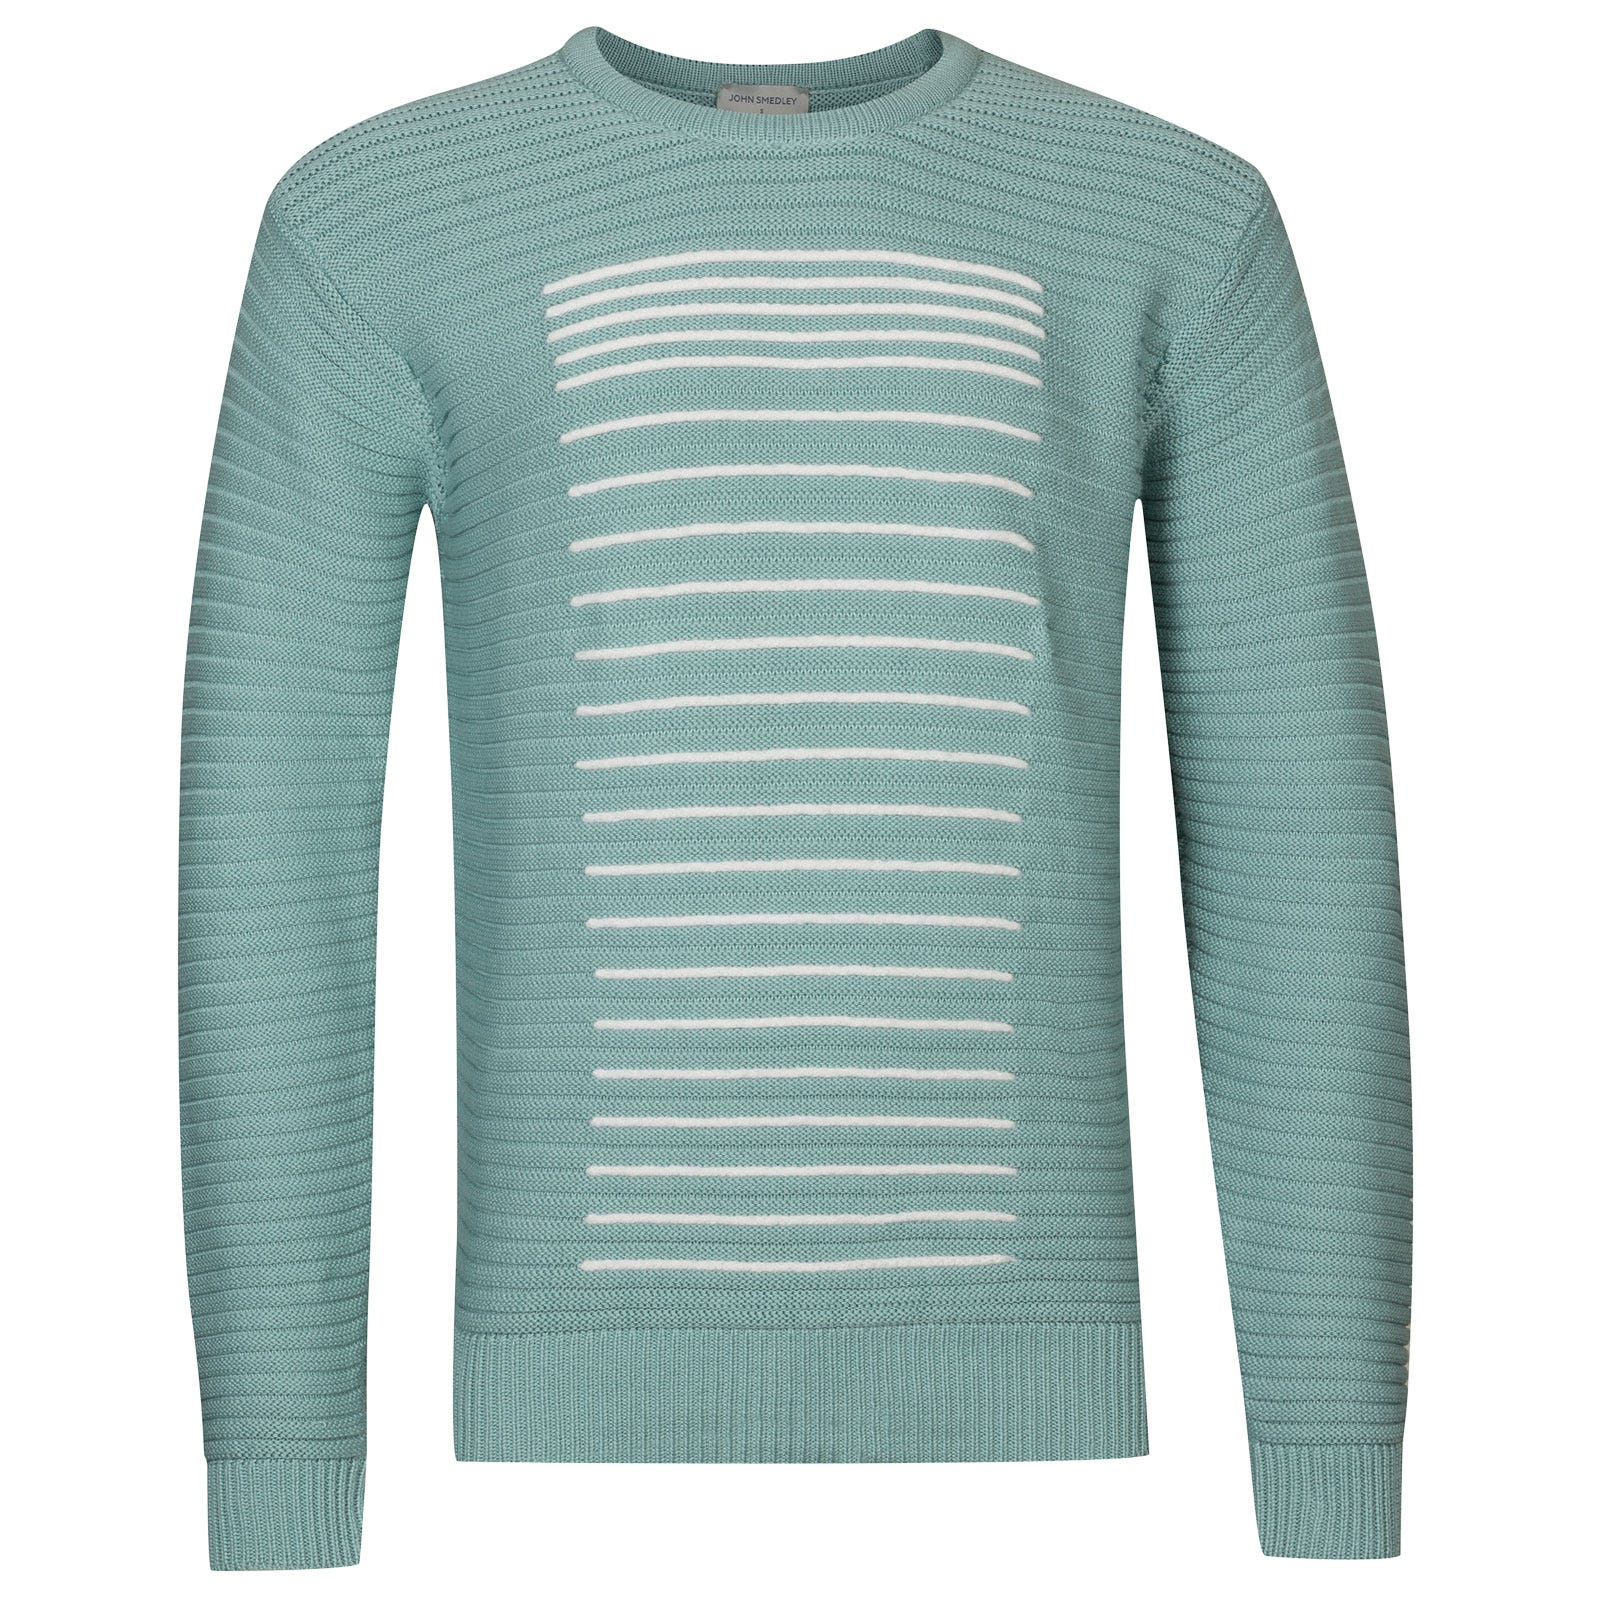 John Smedley Conder in Terrill Green/Snow White-S